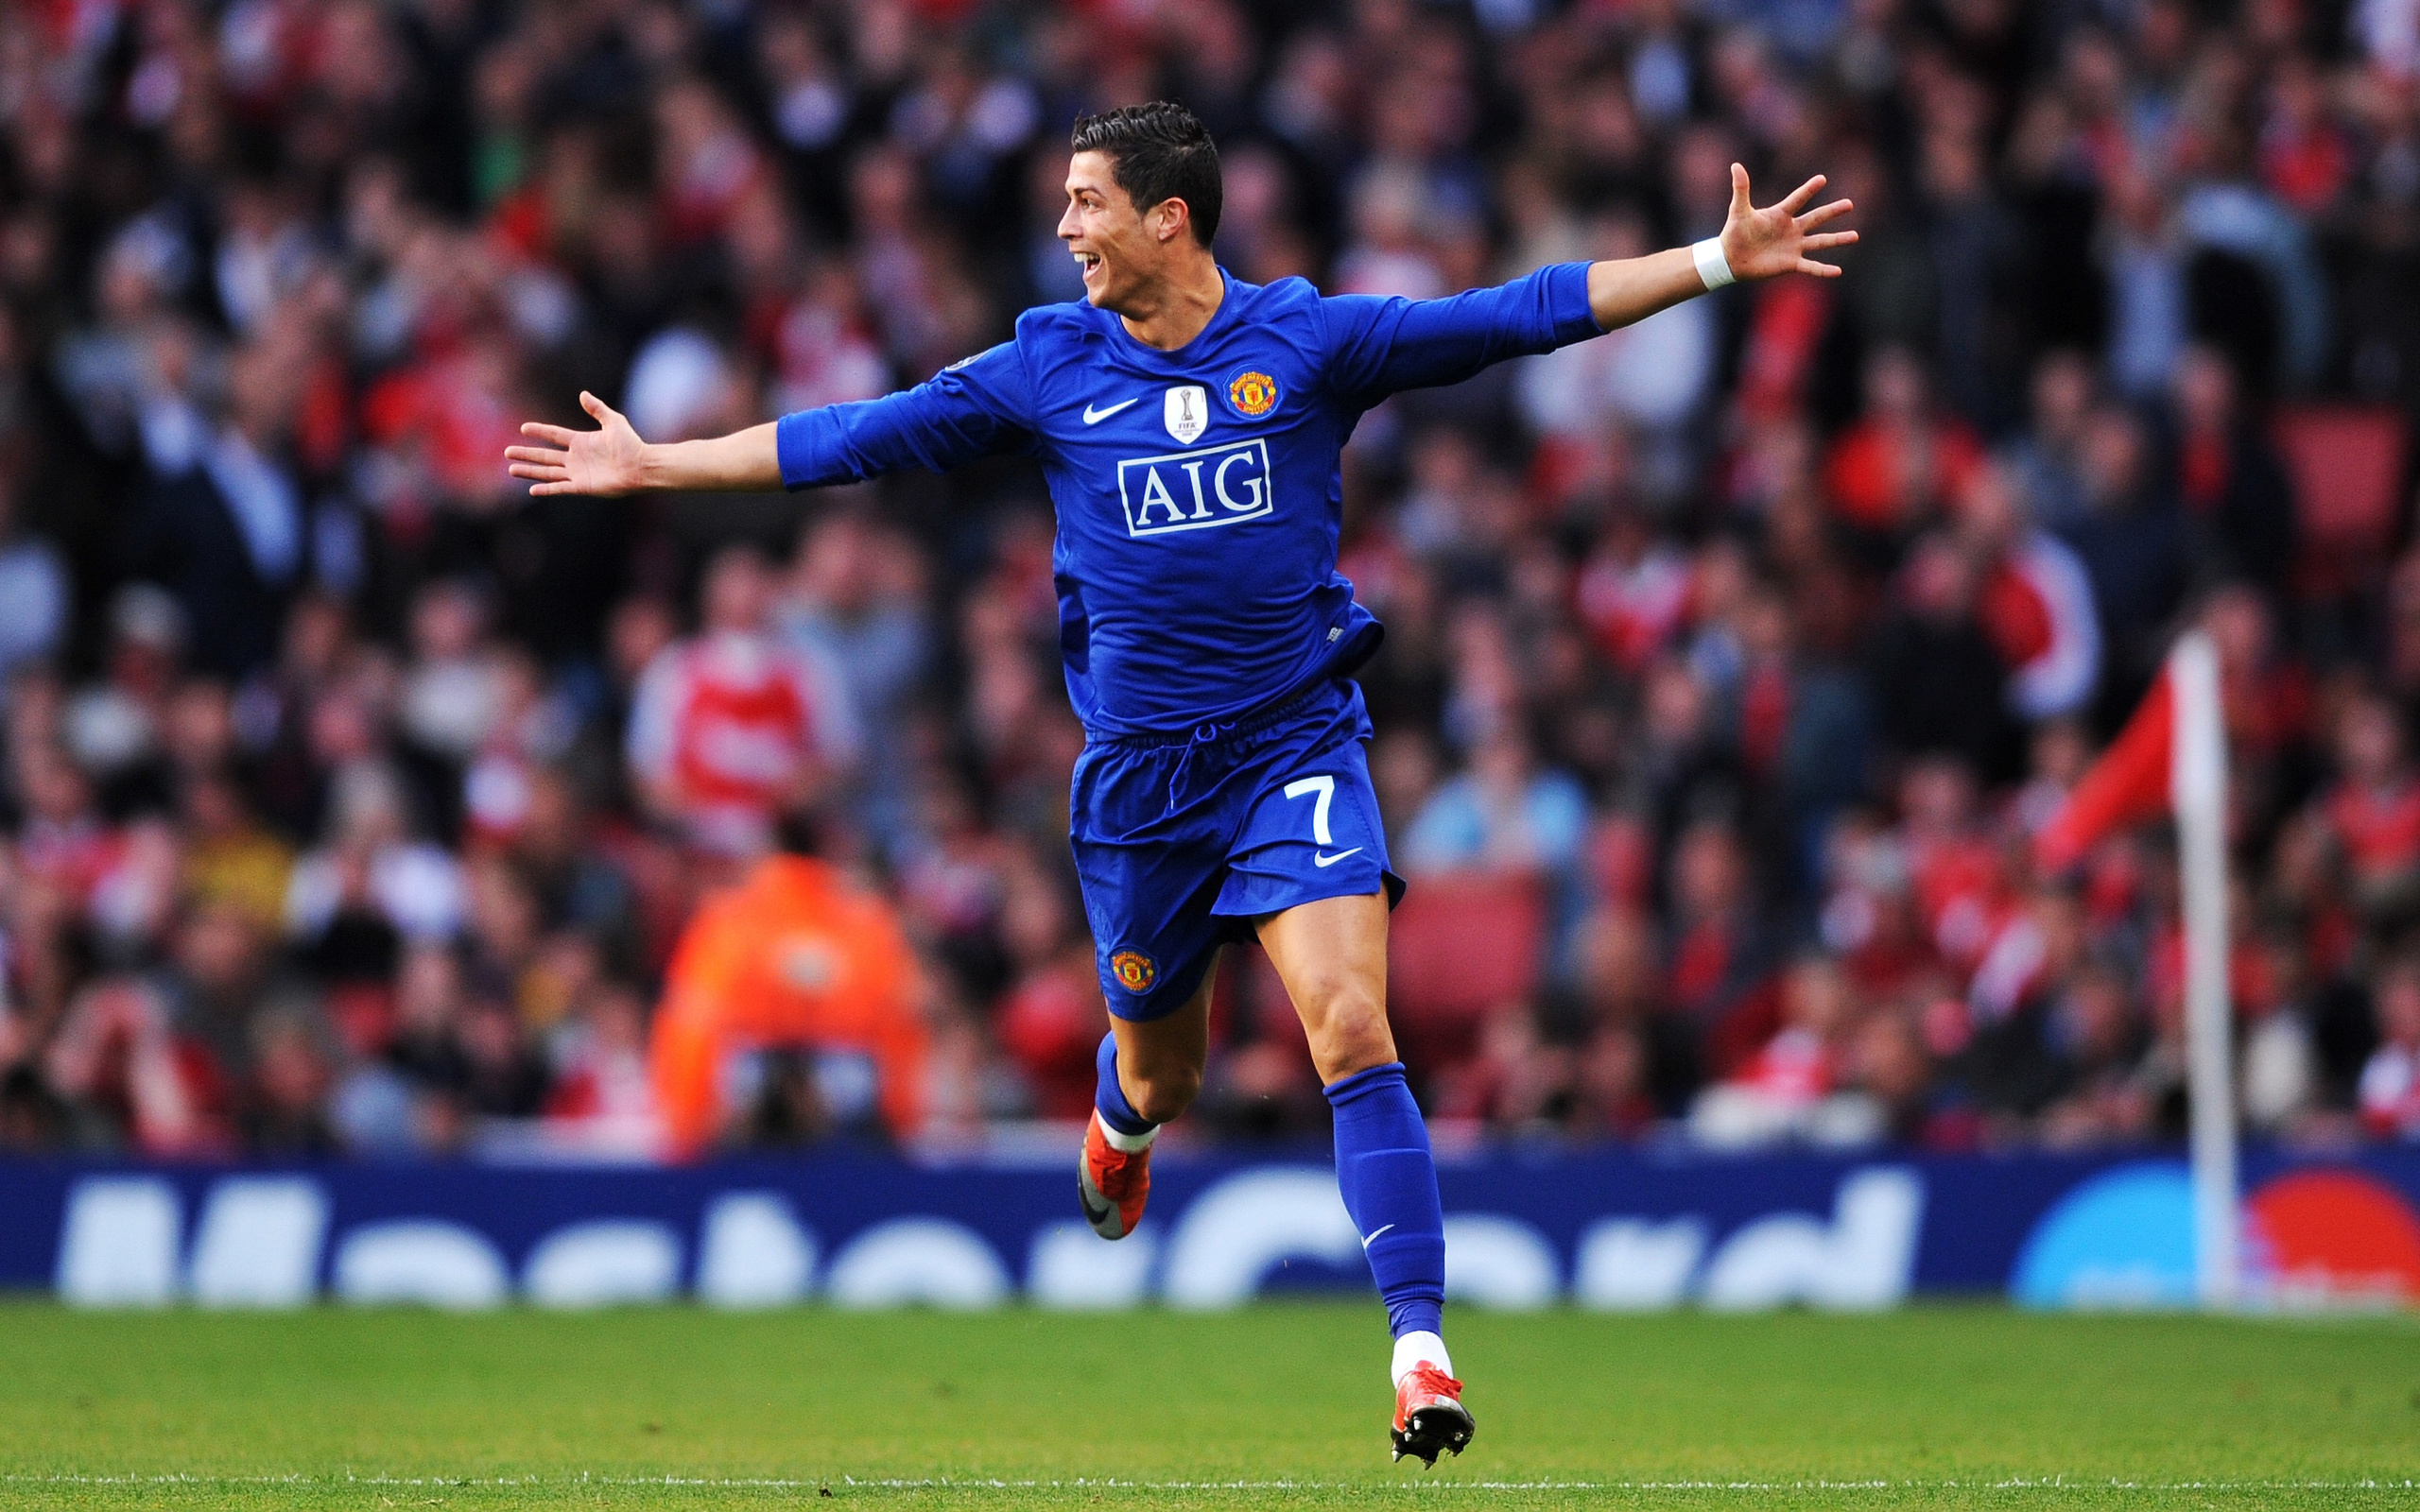 Sports Aig Stadium Manchester United Cristiano Ronaldo Cristiano Ronaldo Manchester United 2009 487640 Hd Wallpaper Backgrounds Download